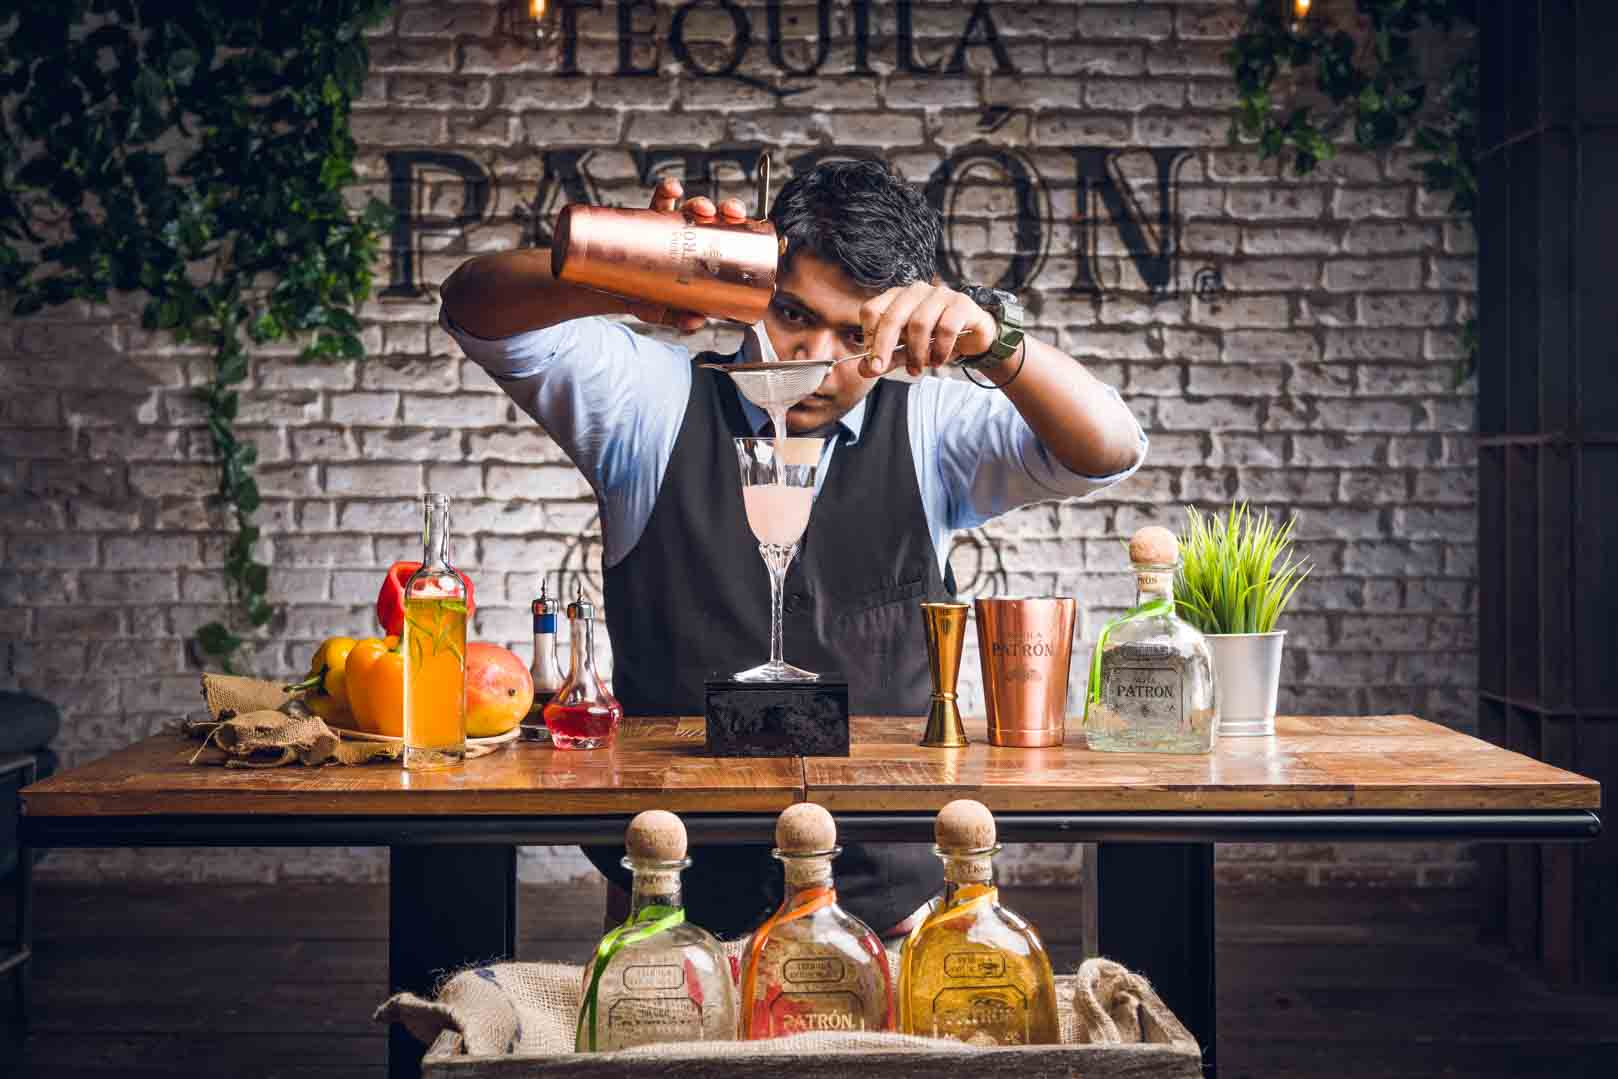 Jure Ursic Photography - Linden Consultancy and Royal Punch Catering Tequila patron-18